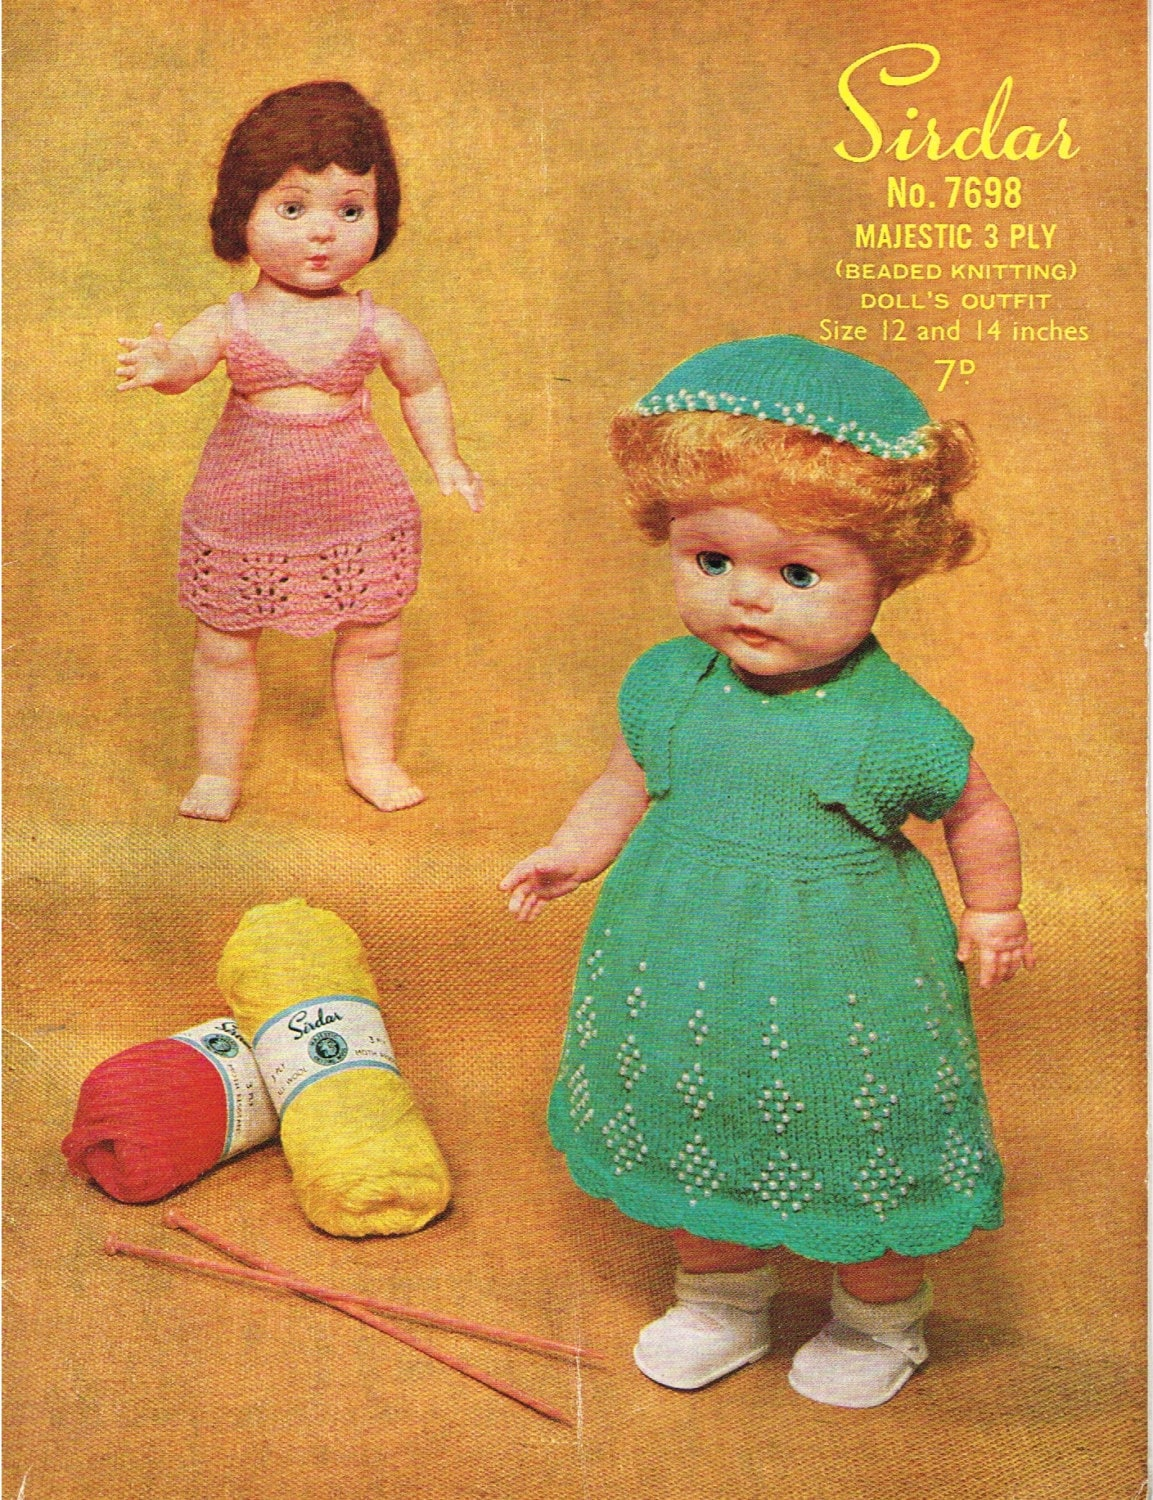 Knitting Patterns For Dolls Clothes 12 Inch : 12 inch and 14 inch dolls clothes knitting pattern. Vintage